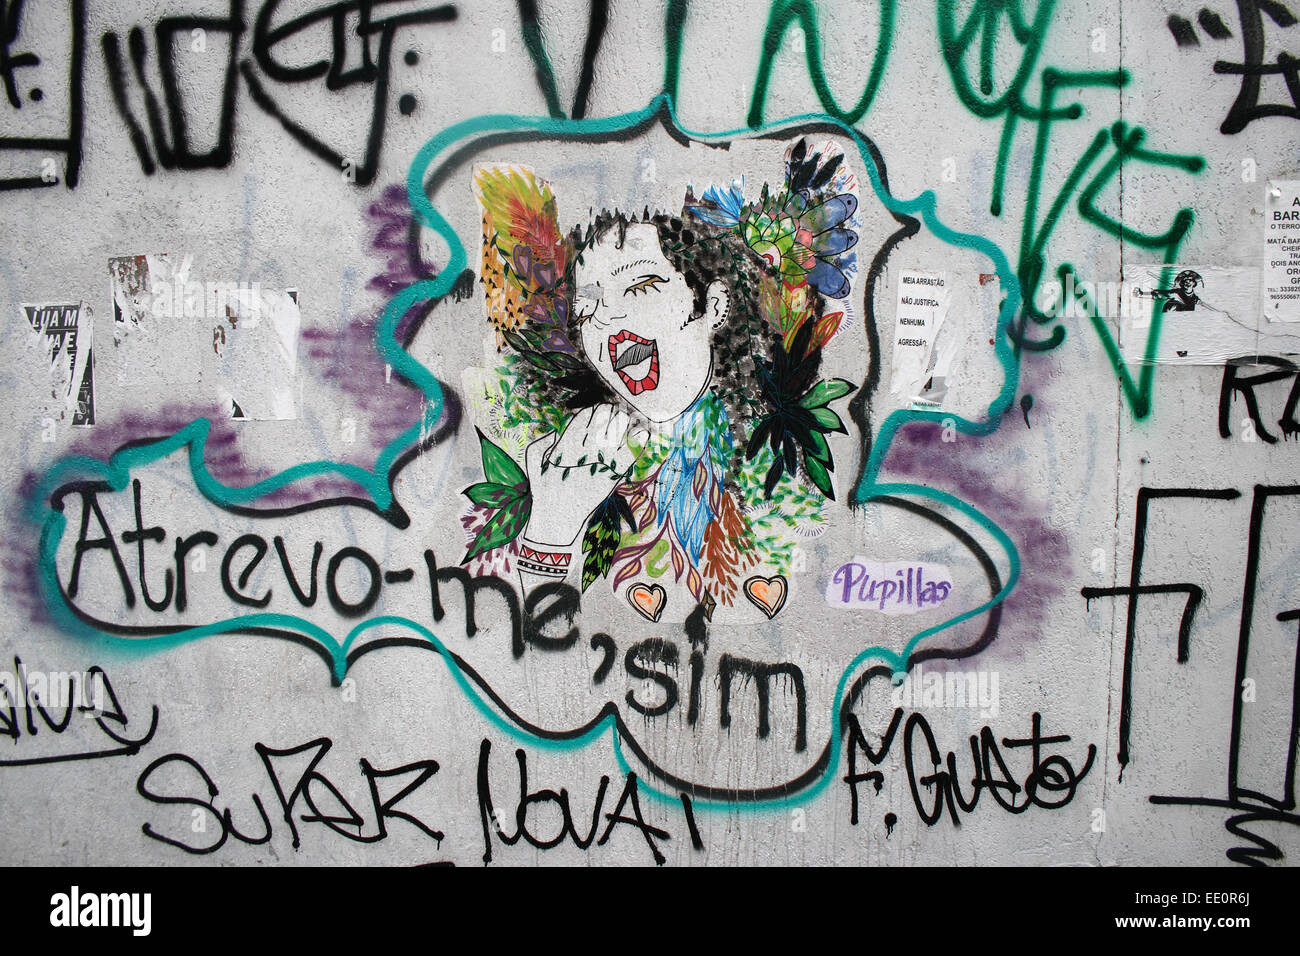 Street art in the Brazilian city of Sao Paulo. - Stock Image